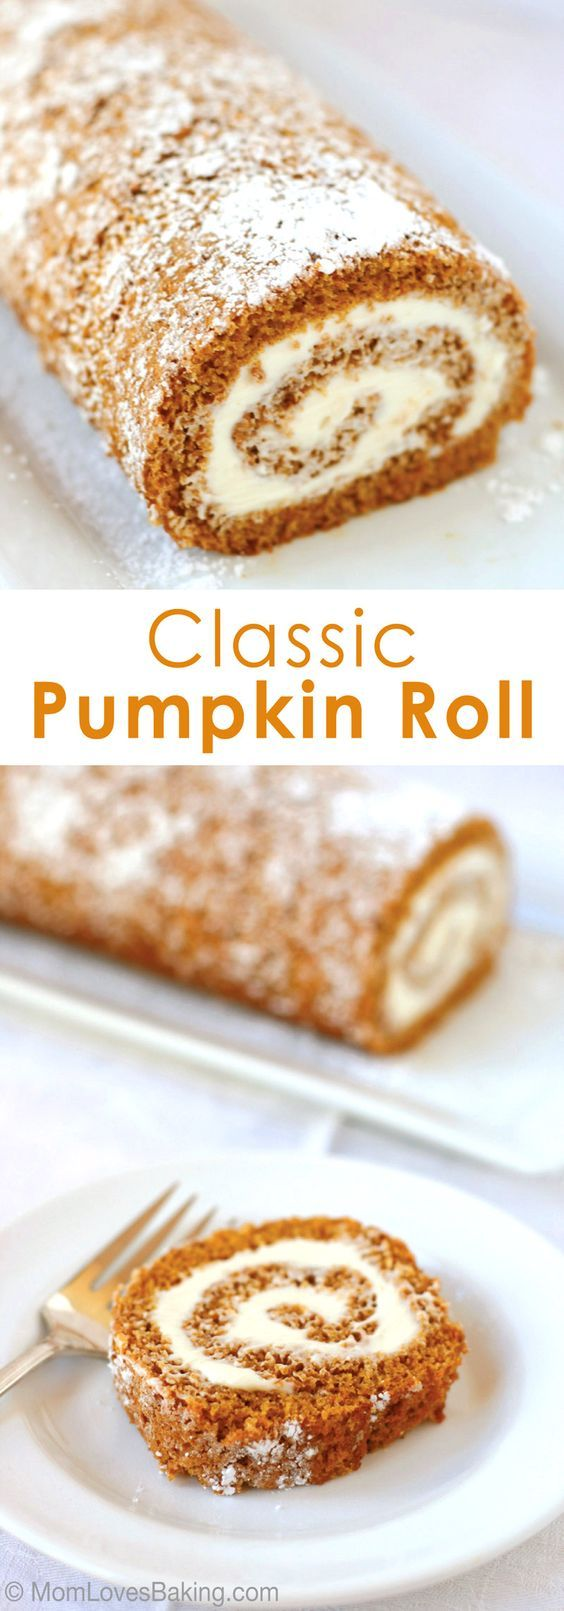 This is my favorite go to desert for those cozy fall days is this classic pumpkin roll! Pumpkin is my favorite.